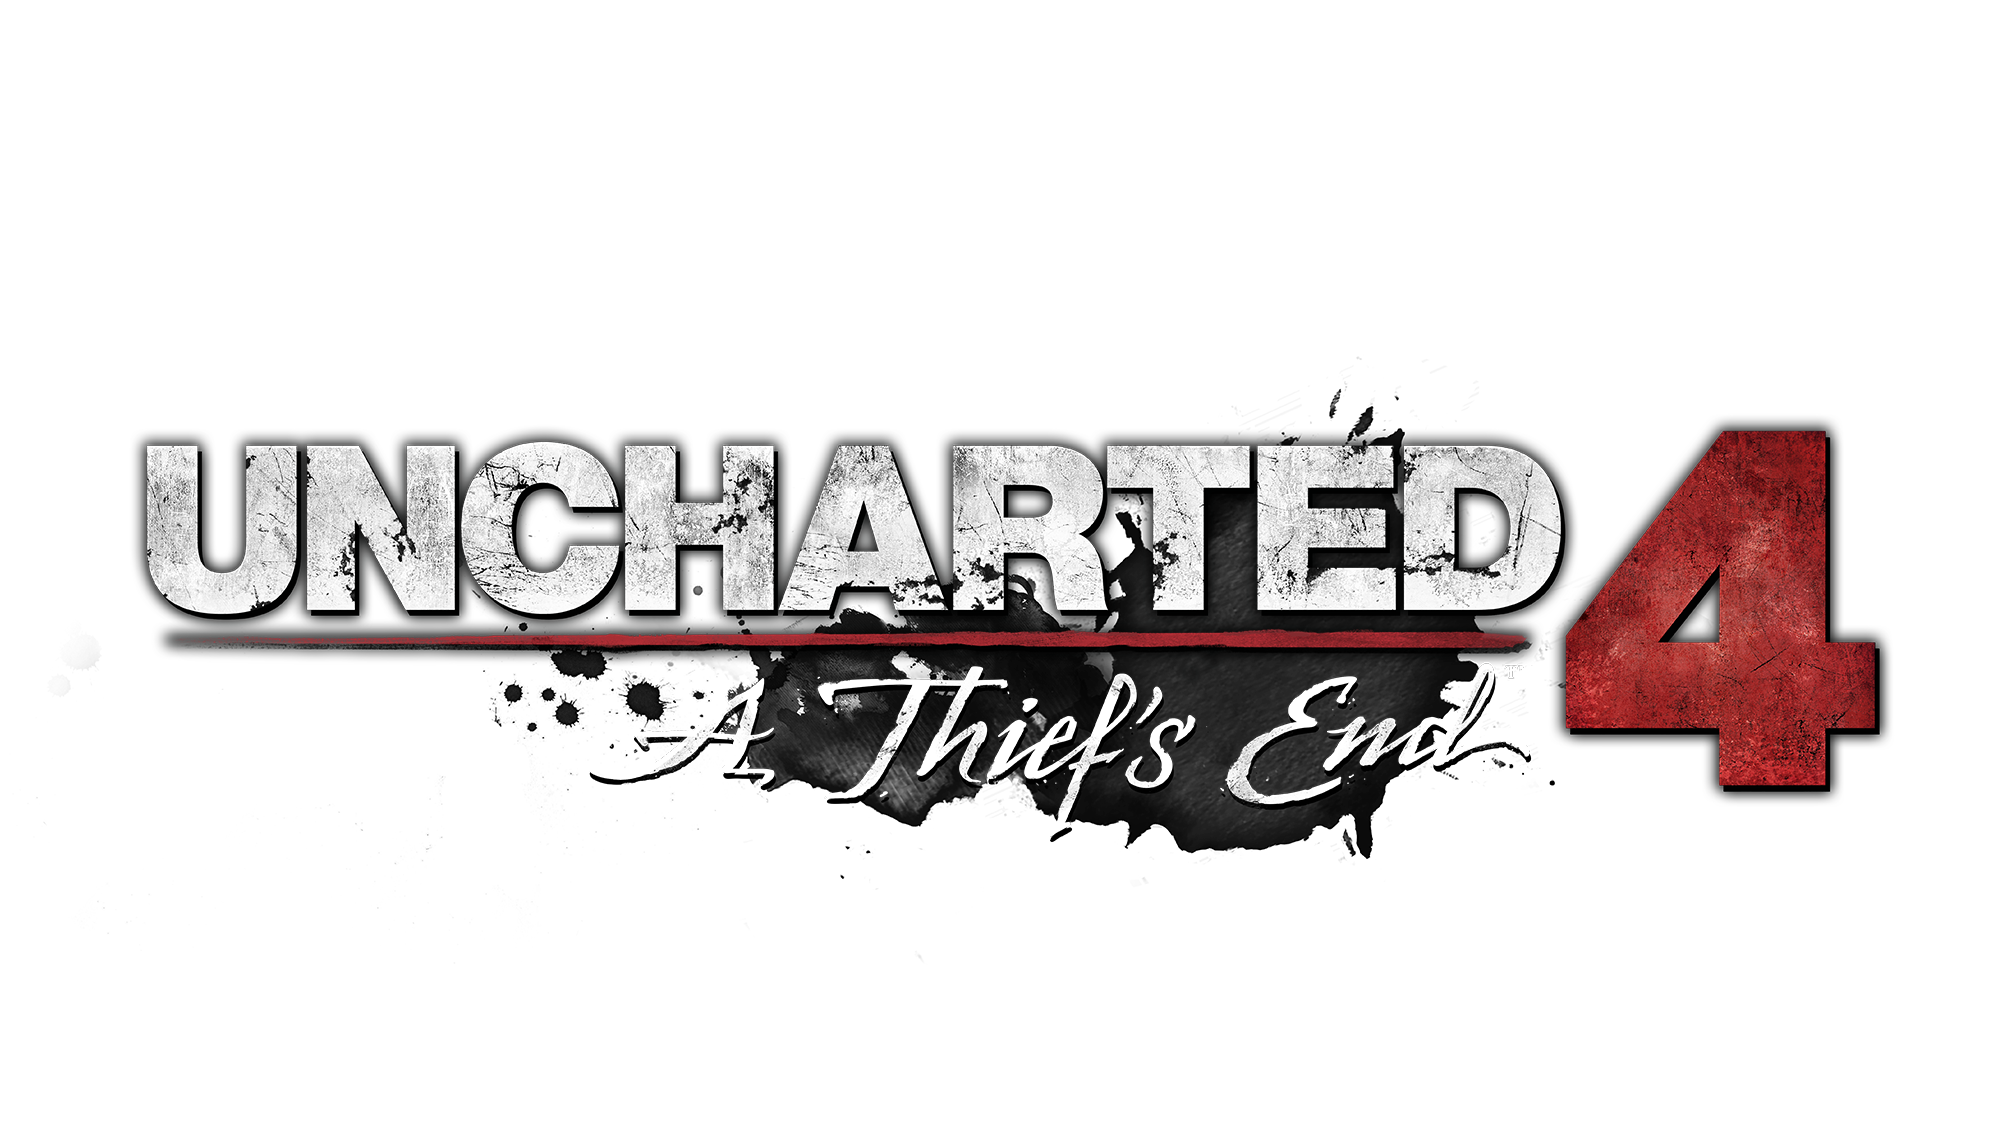 Uncharted Hd Png Transparent Uncharted Hd Png Images Pluspng